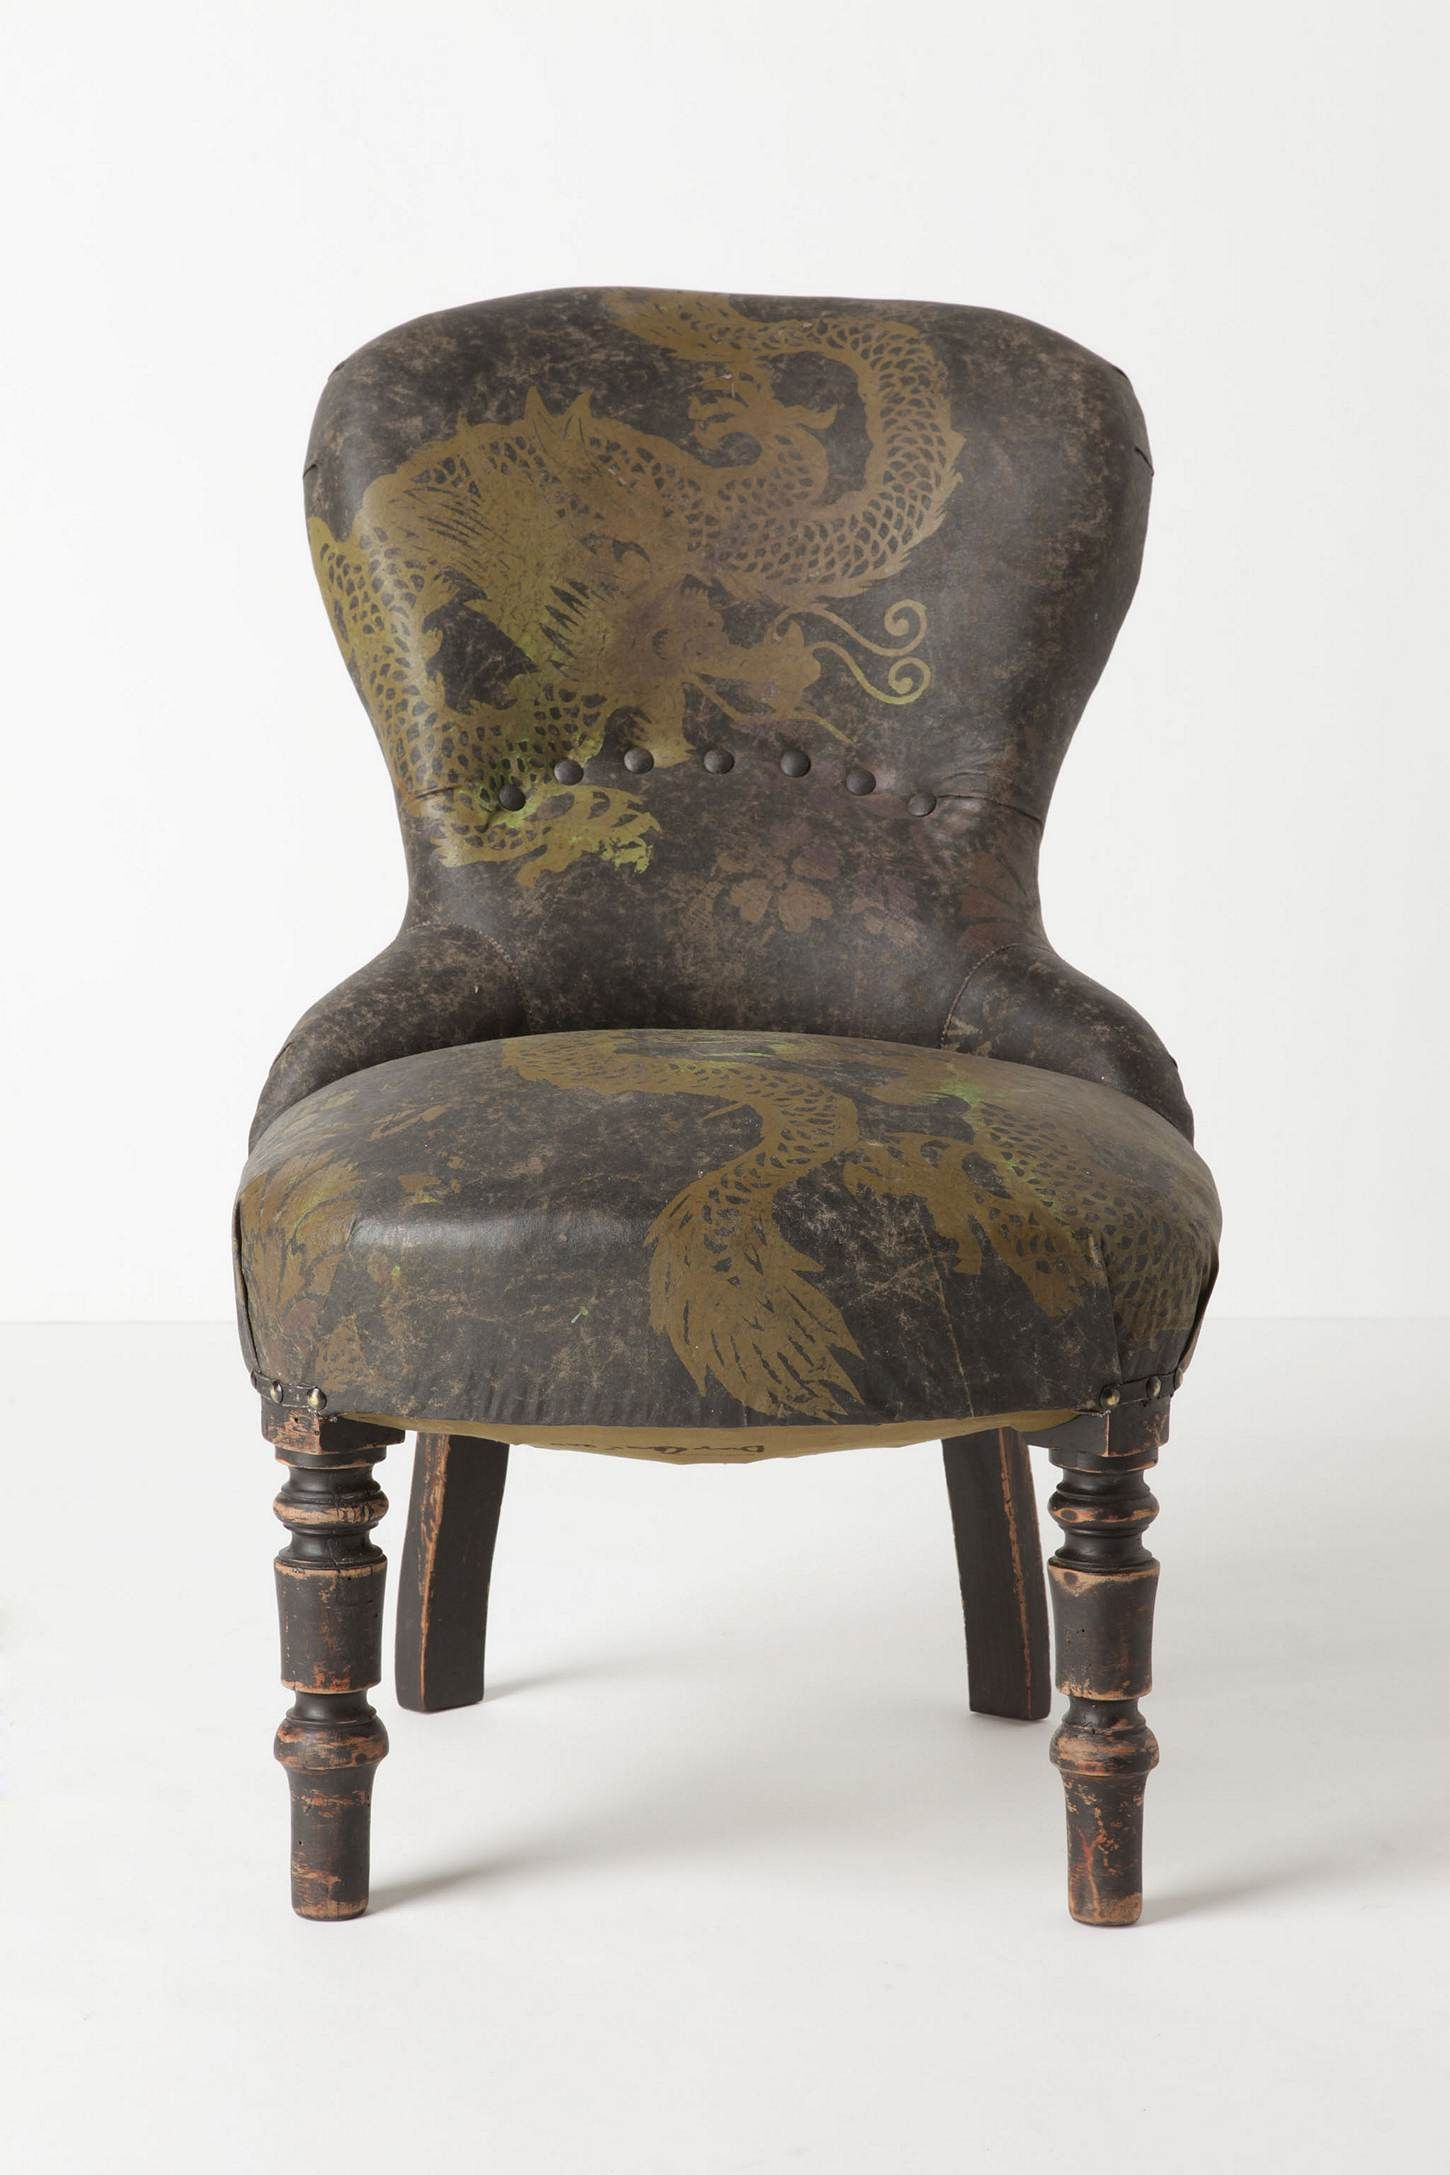 Two dragons asian intrigue pinterest dragons interiors and